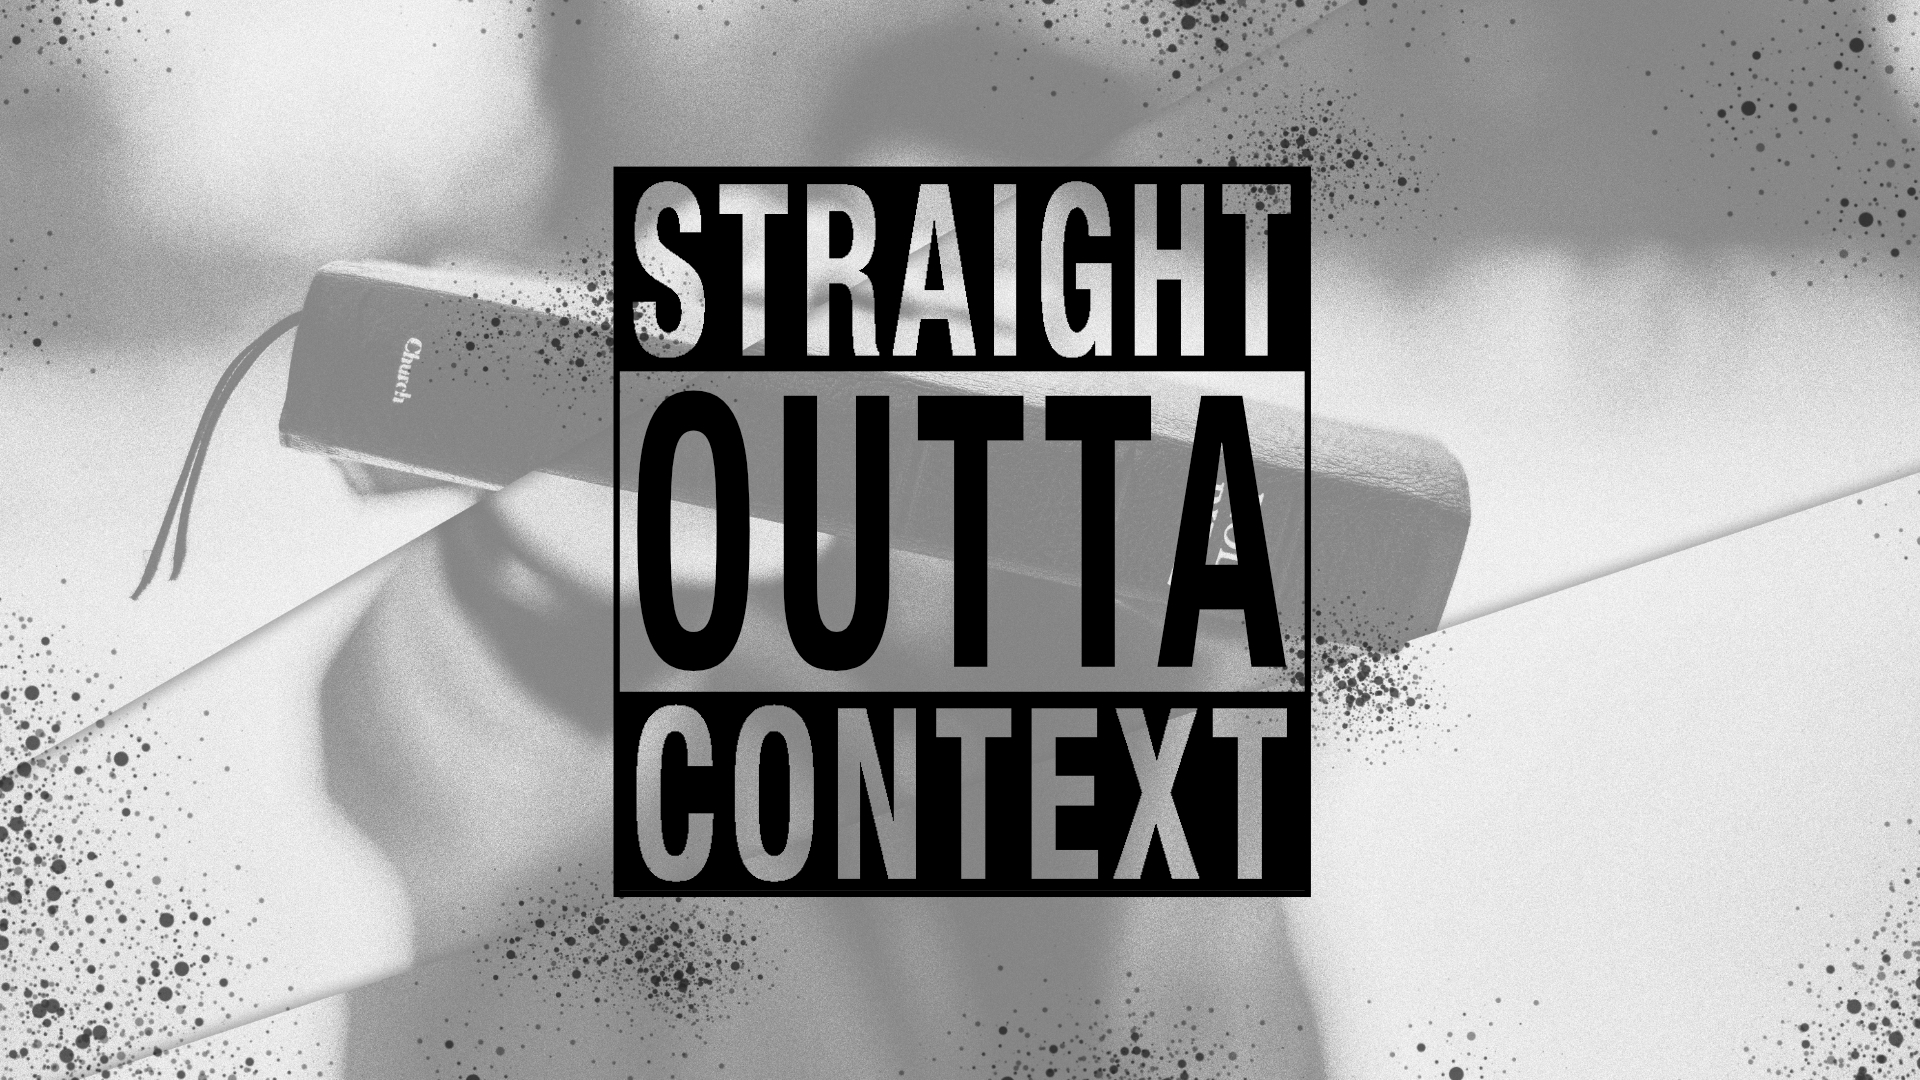 Straight Outta Context: A Vindication of Vision